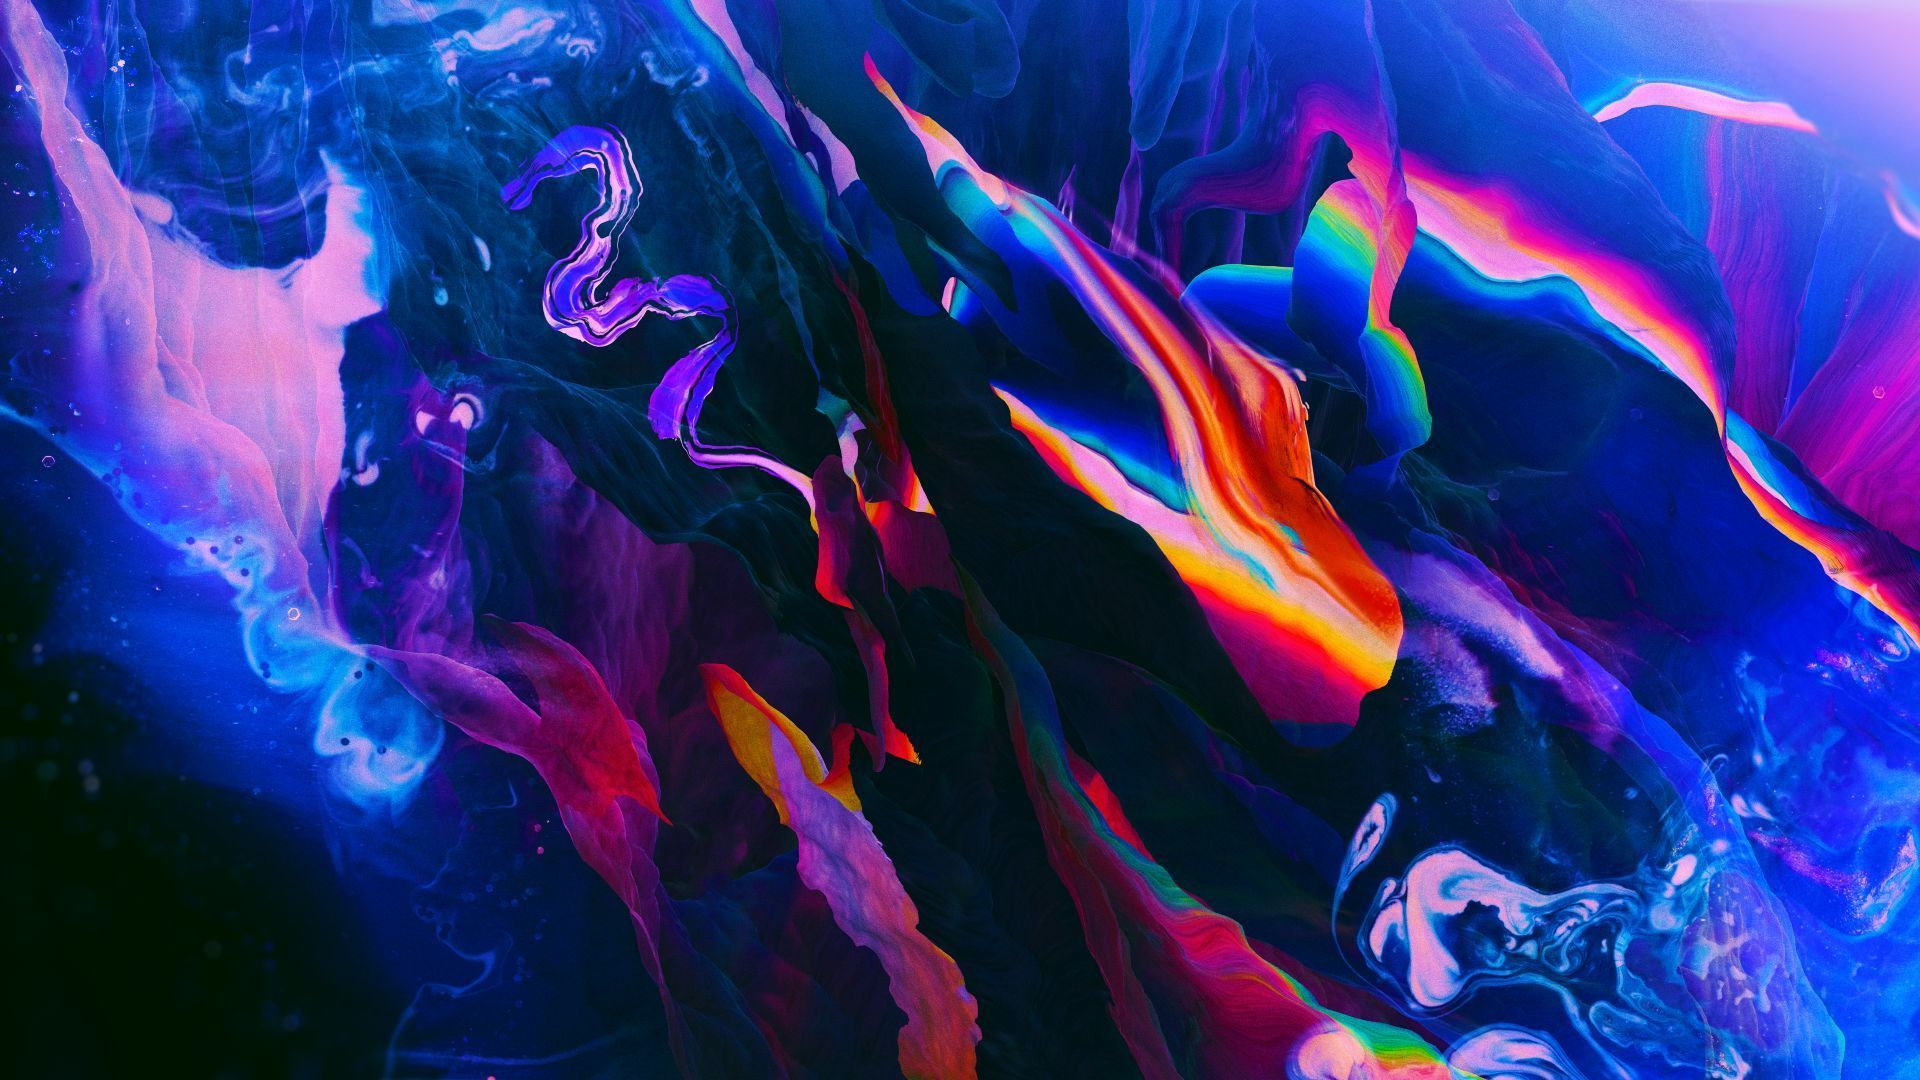 1920x1080 abstract, colorful, 8K (horizontal) | Wallpapers❤️ in 2019 ...